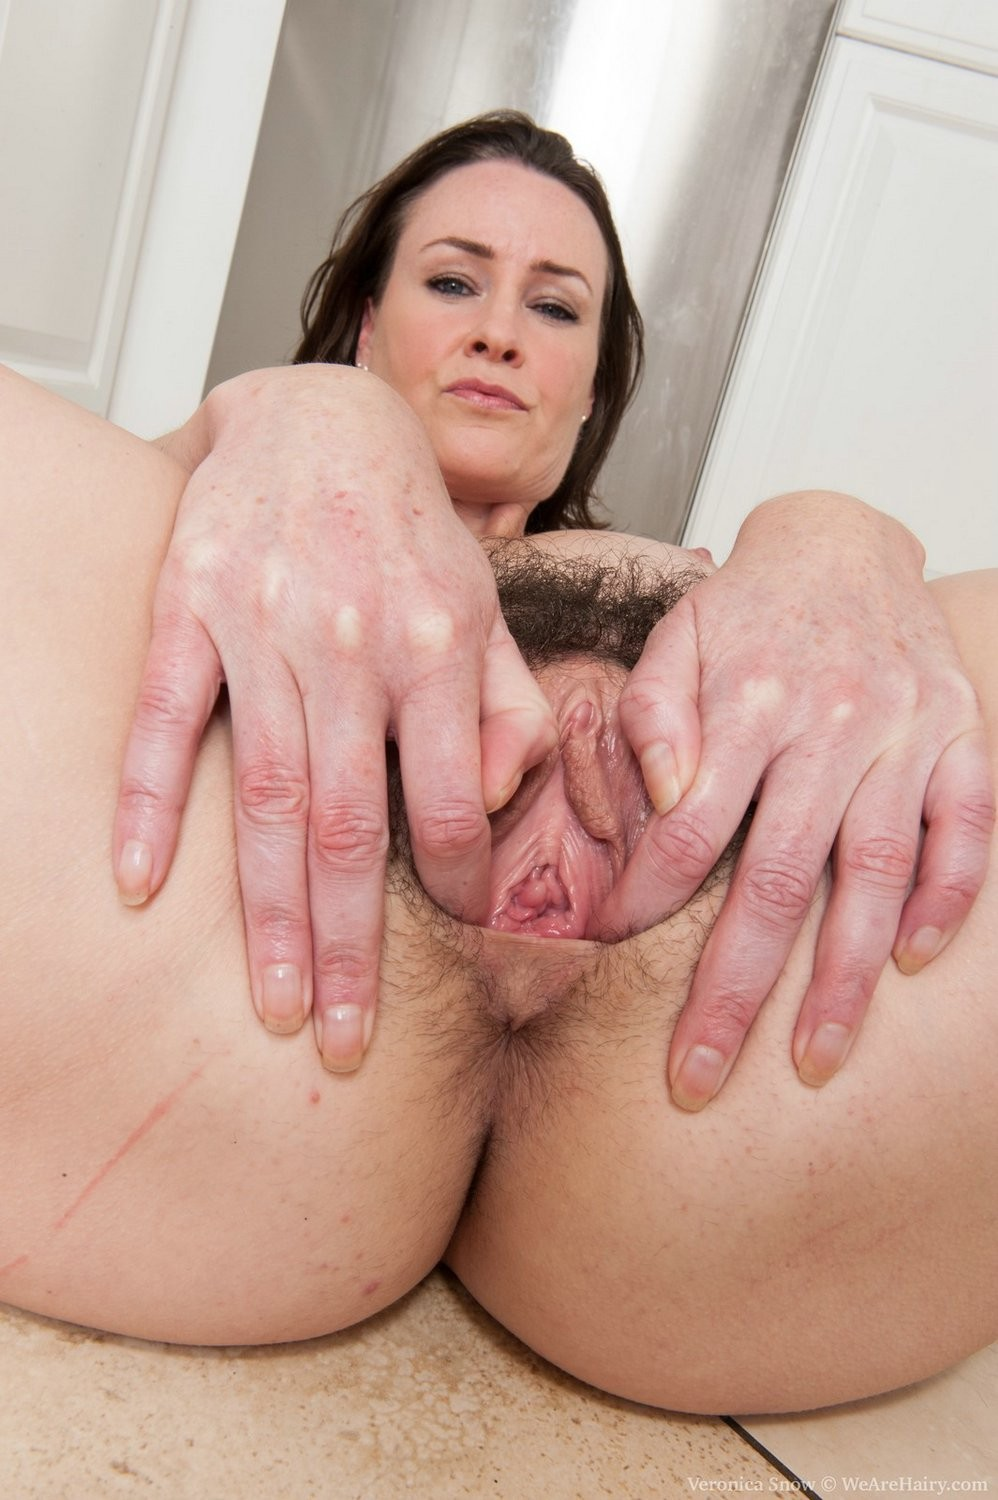 Hairy milf pictures